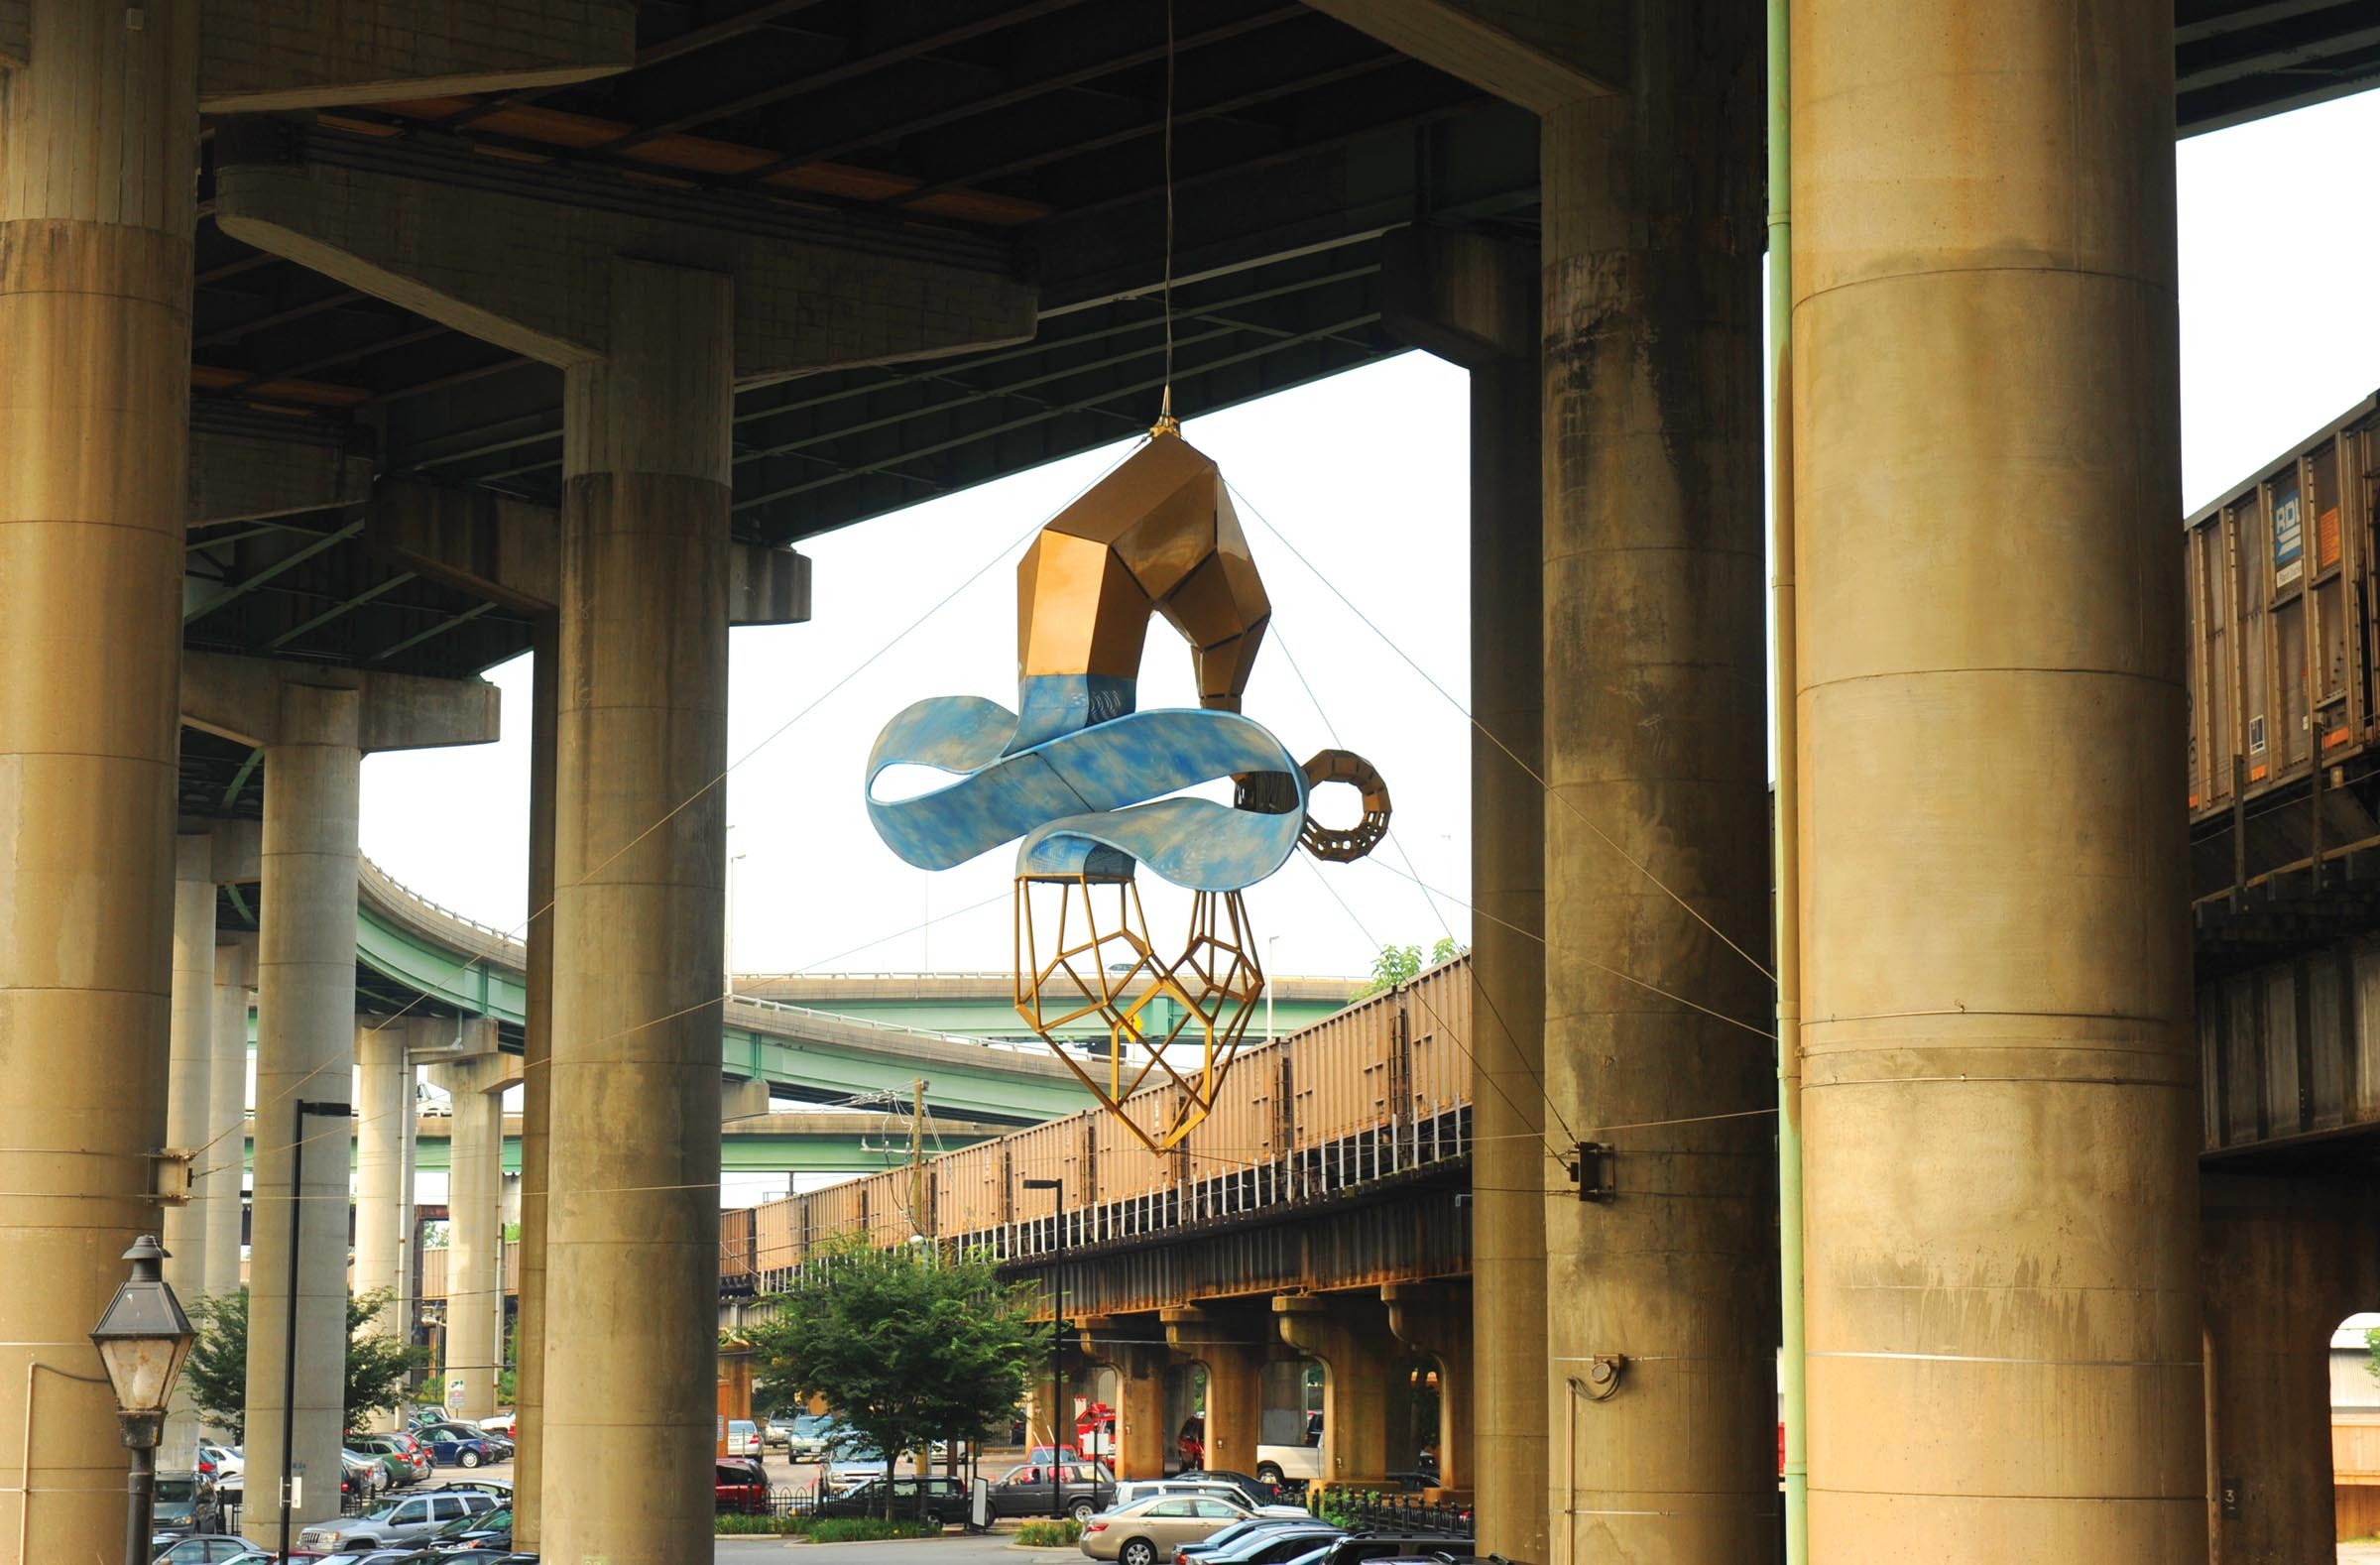 """""""Skyrider,"""" a 2003 sculpture by John Newman, hanging from Interstate 95 near the Main Street Station, is a Public Art Commission project. - SCOTT ELMQUIST"""